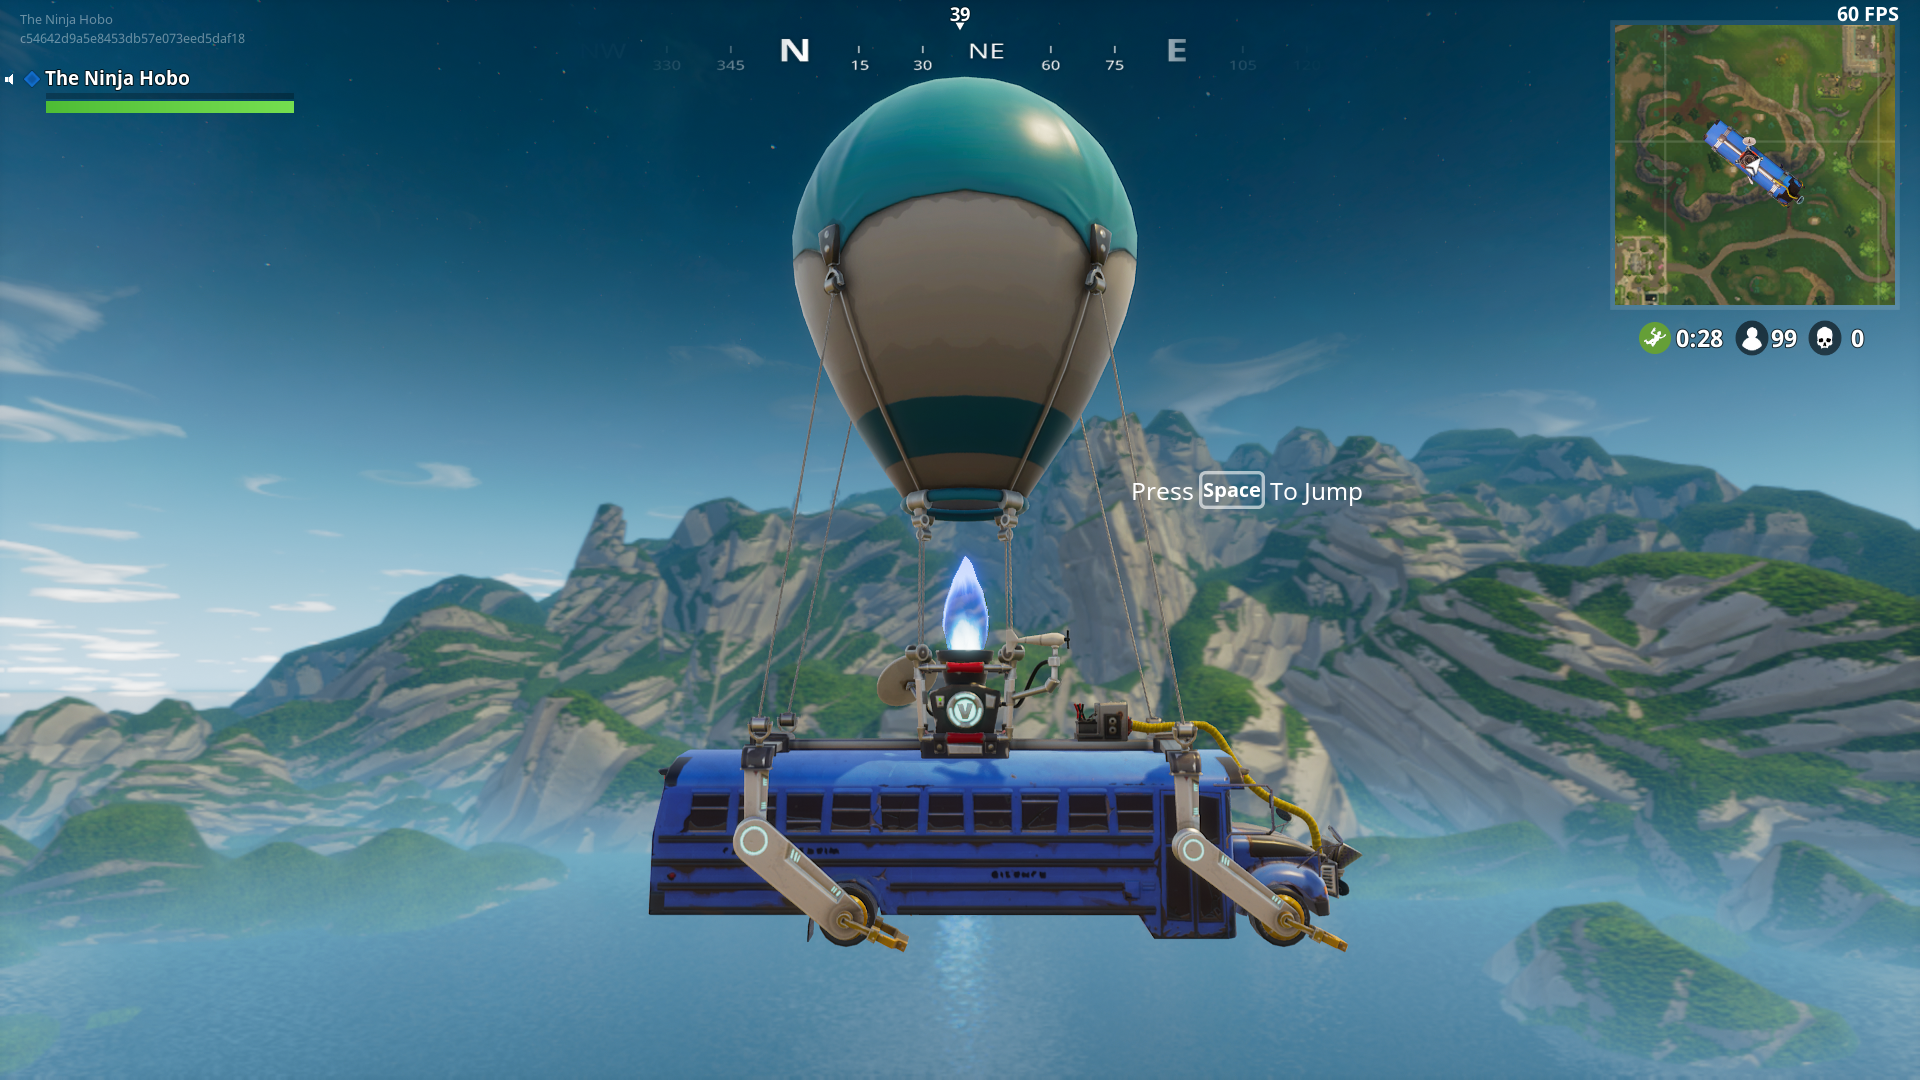 Science Explains the Impossible Physics of the Fortnite Battle 1920x1080